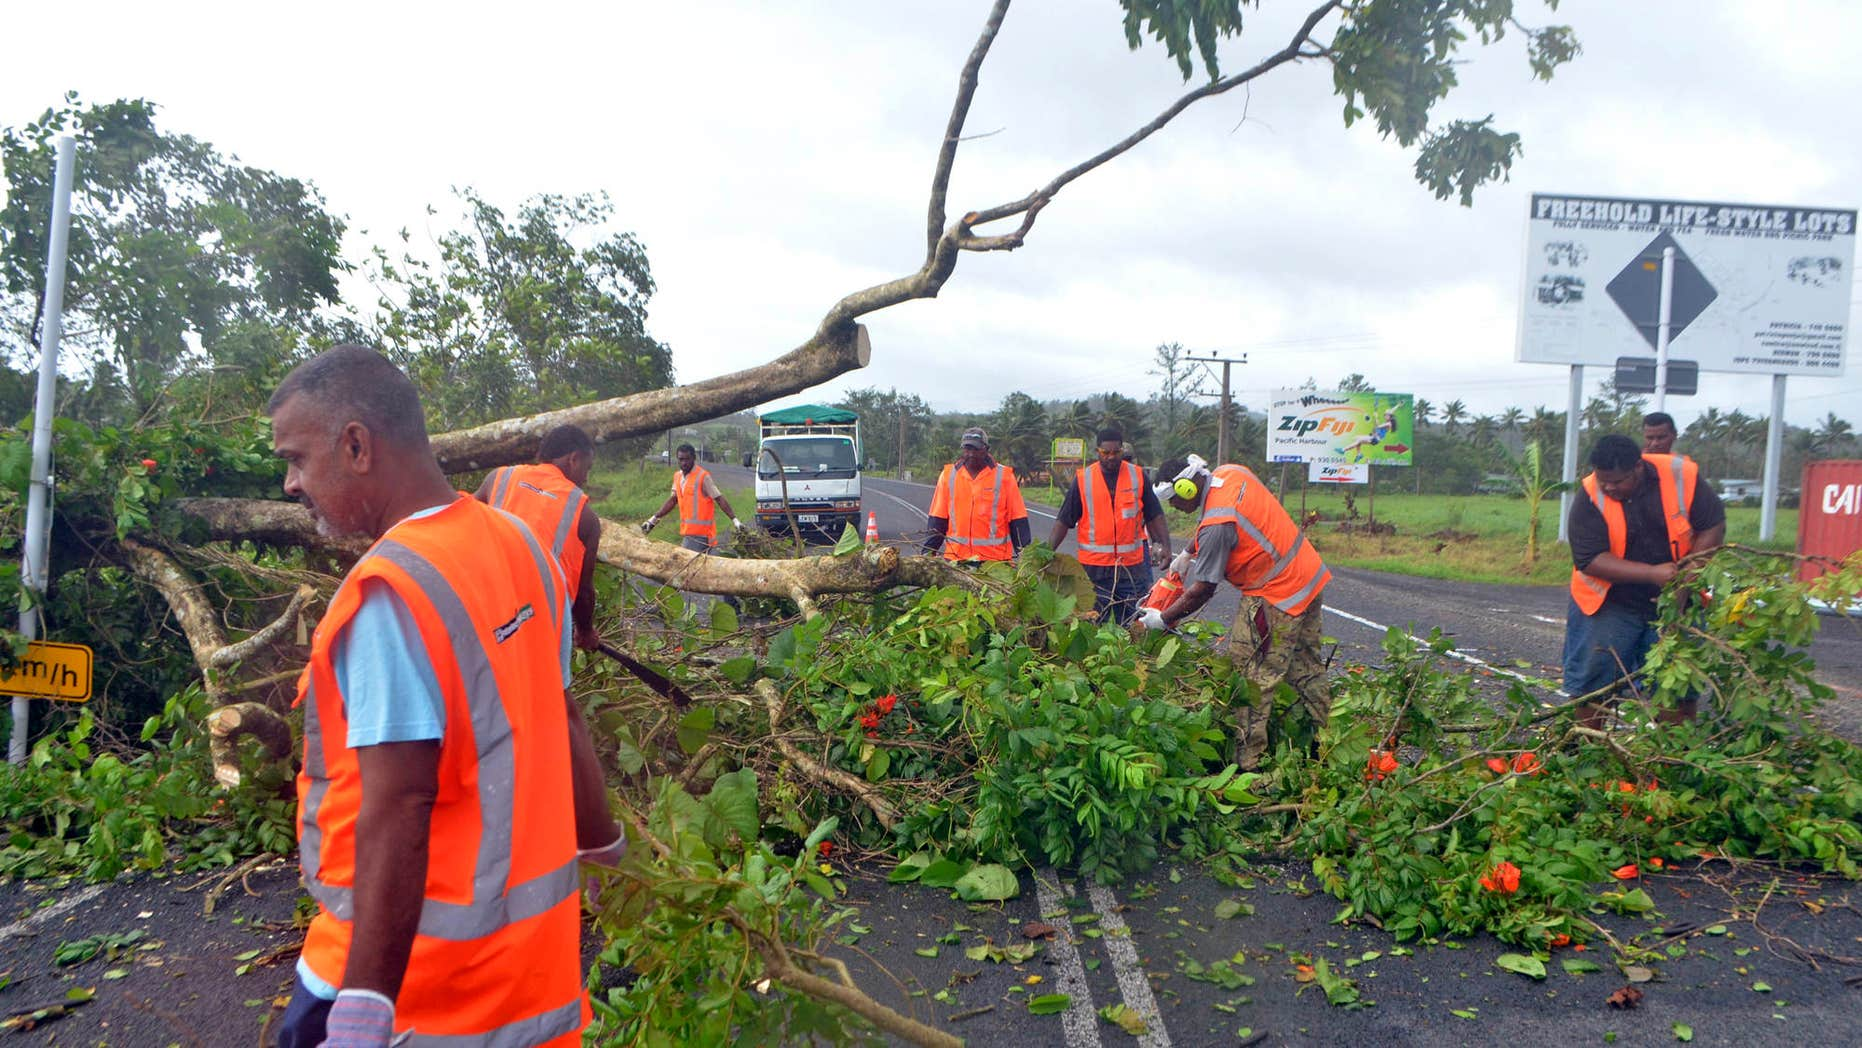 Road workers remove a fallen tree blocking a road near Lami, Fiji, Sunday, Feb. 21, 2016, after cyclone Winston ripped through the country.